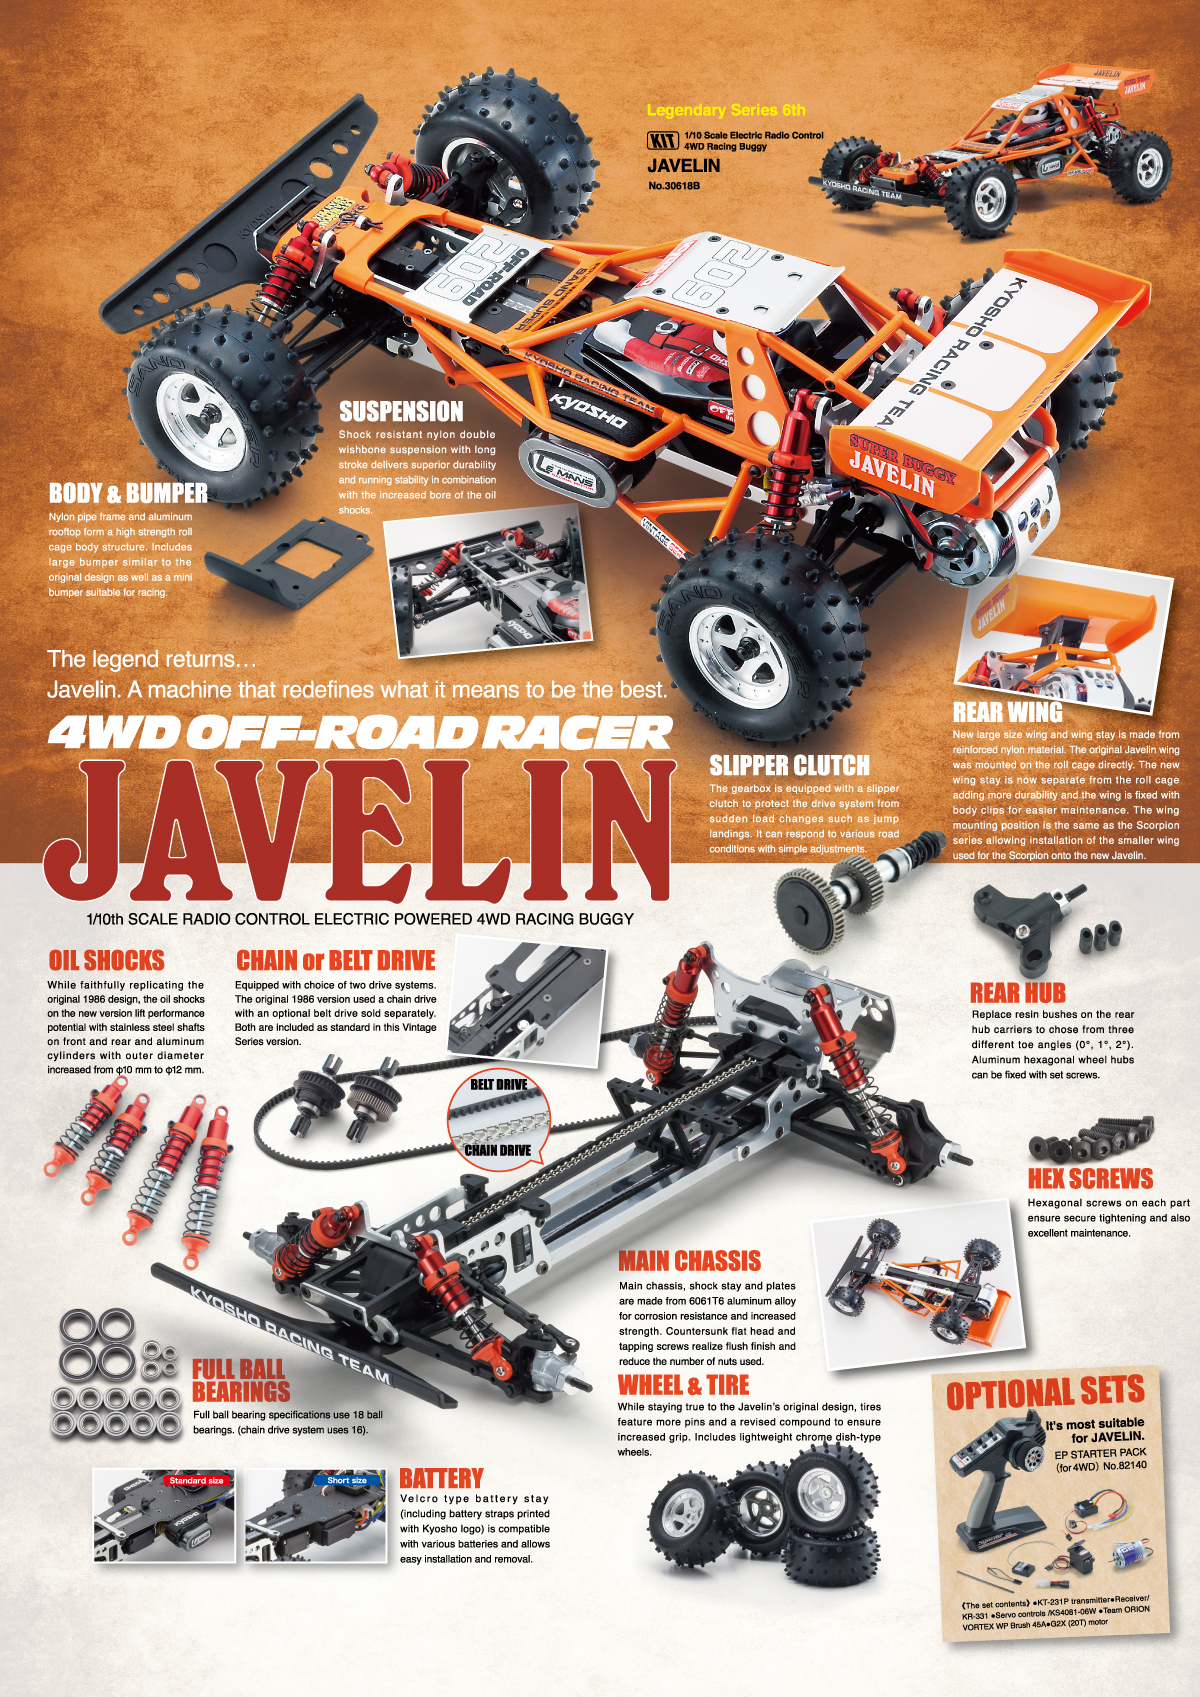 Javelin 1 10 Ep 4wd Buggy Kit 30618 Kyosho Rc Glowplug Driver For Radio Control Nylon Pipe Frame And Aluminum Rooftop Form A High Strength Roll Cage Body Structure Includes Large Bumper Similar To The Original Design As Well Mini